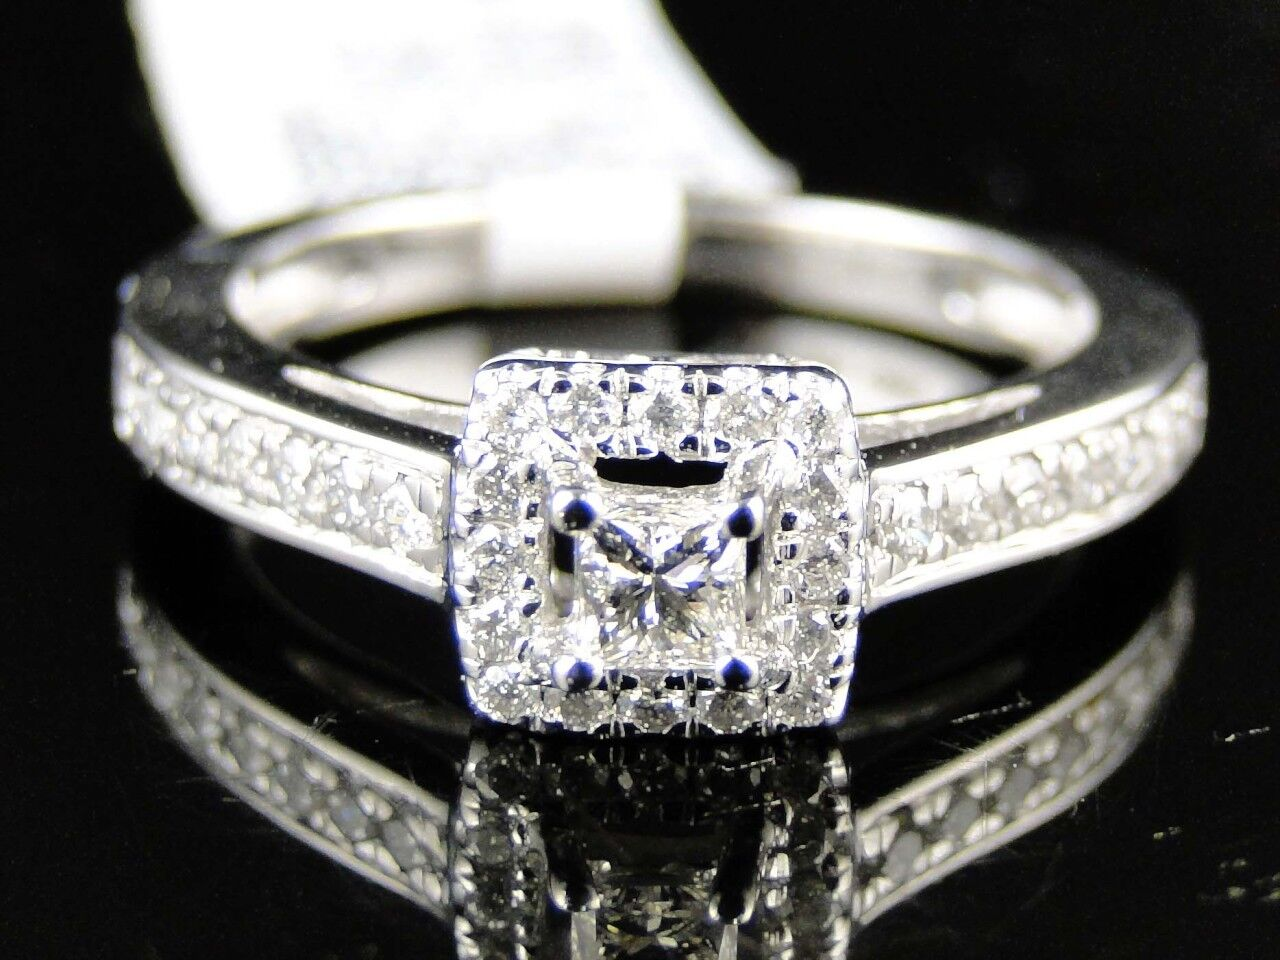 14K LADIES WHITE gold PRINCESS CUT DIAMOND ENGAGEMENT WEDDING 7MM RING 1 2 CT